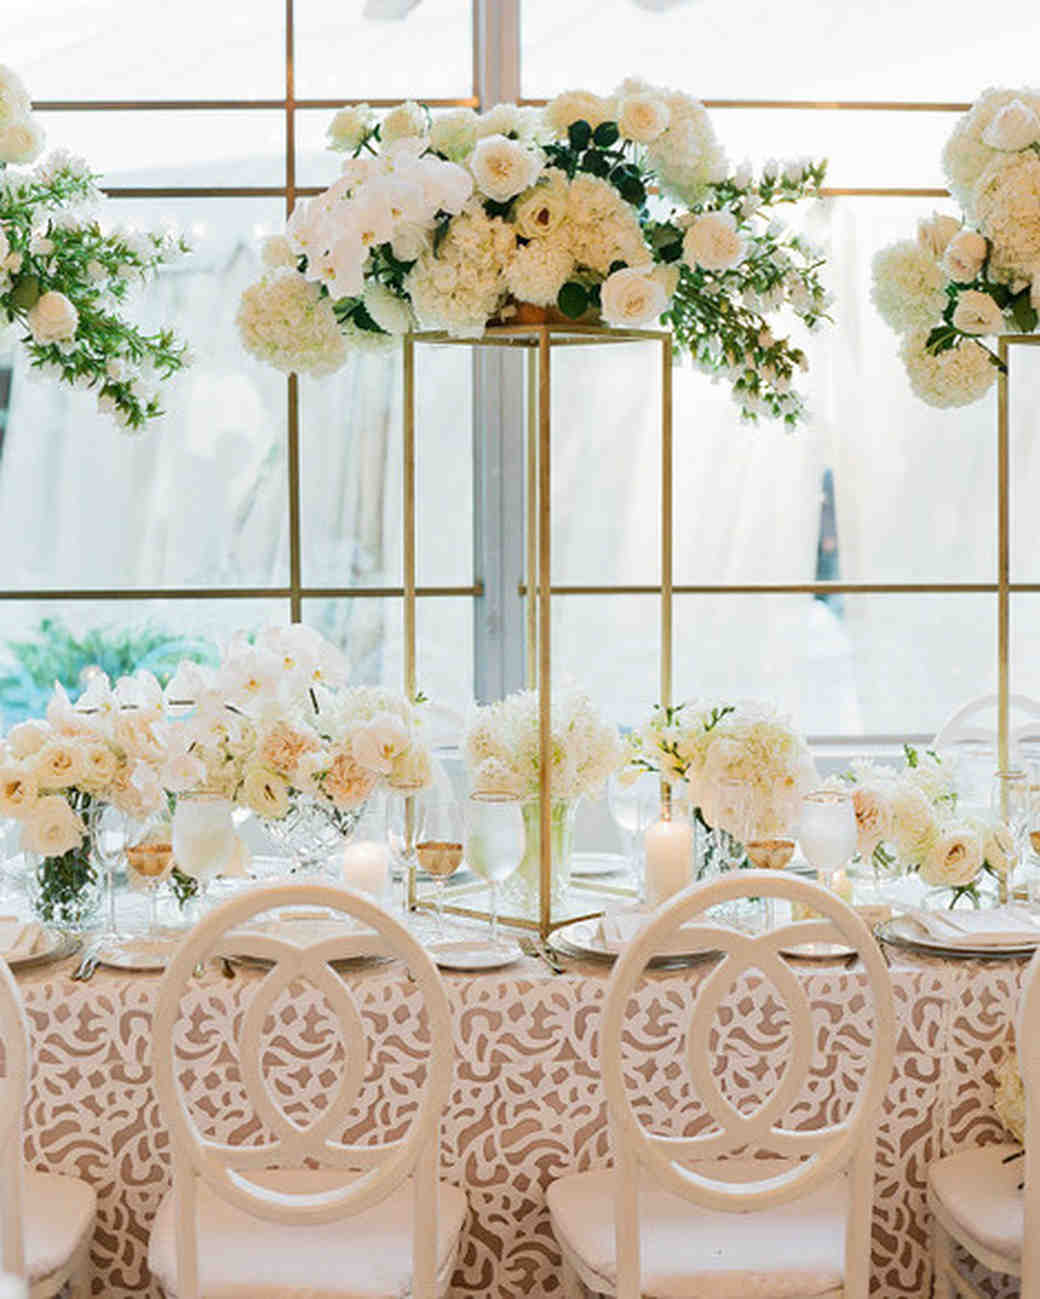 2018 Wedding Trends For Modern Brides Arabia Weddings